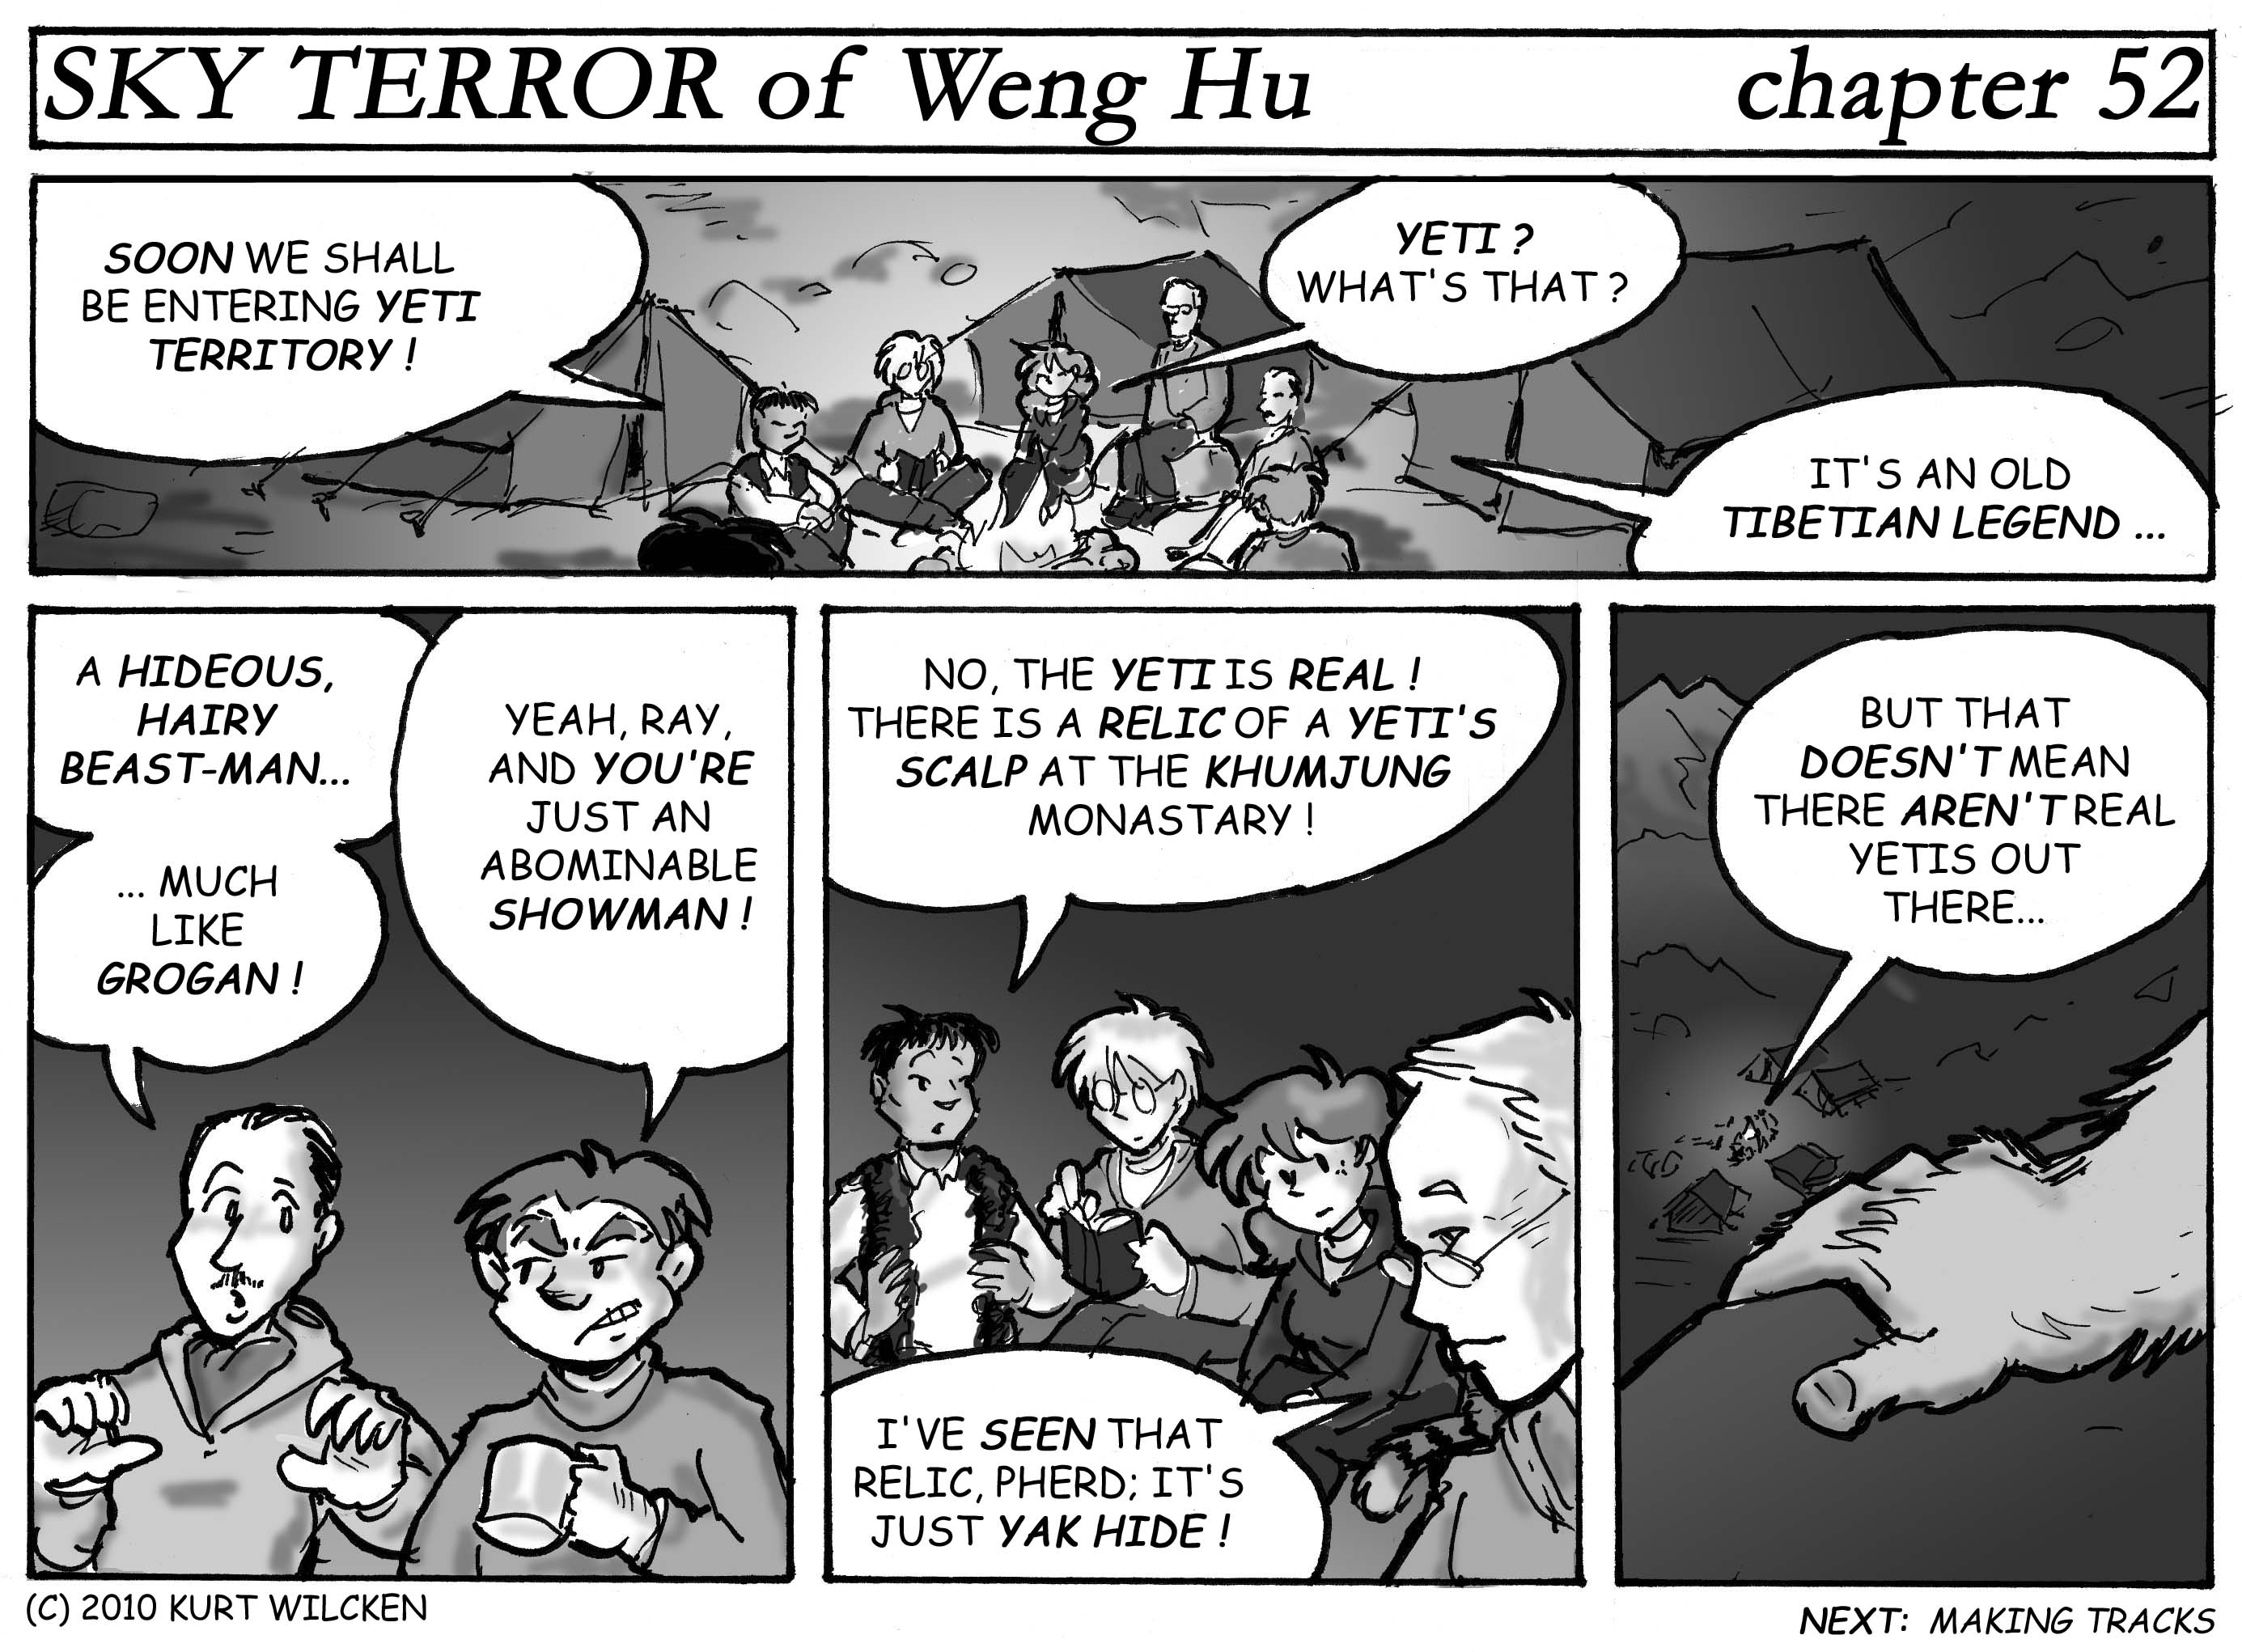 SKY TERROR of Weng Hu:  Chapter 52 — Yeti or Not